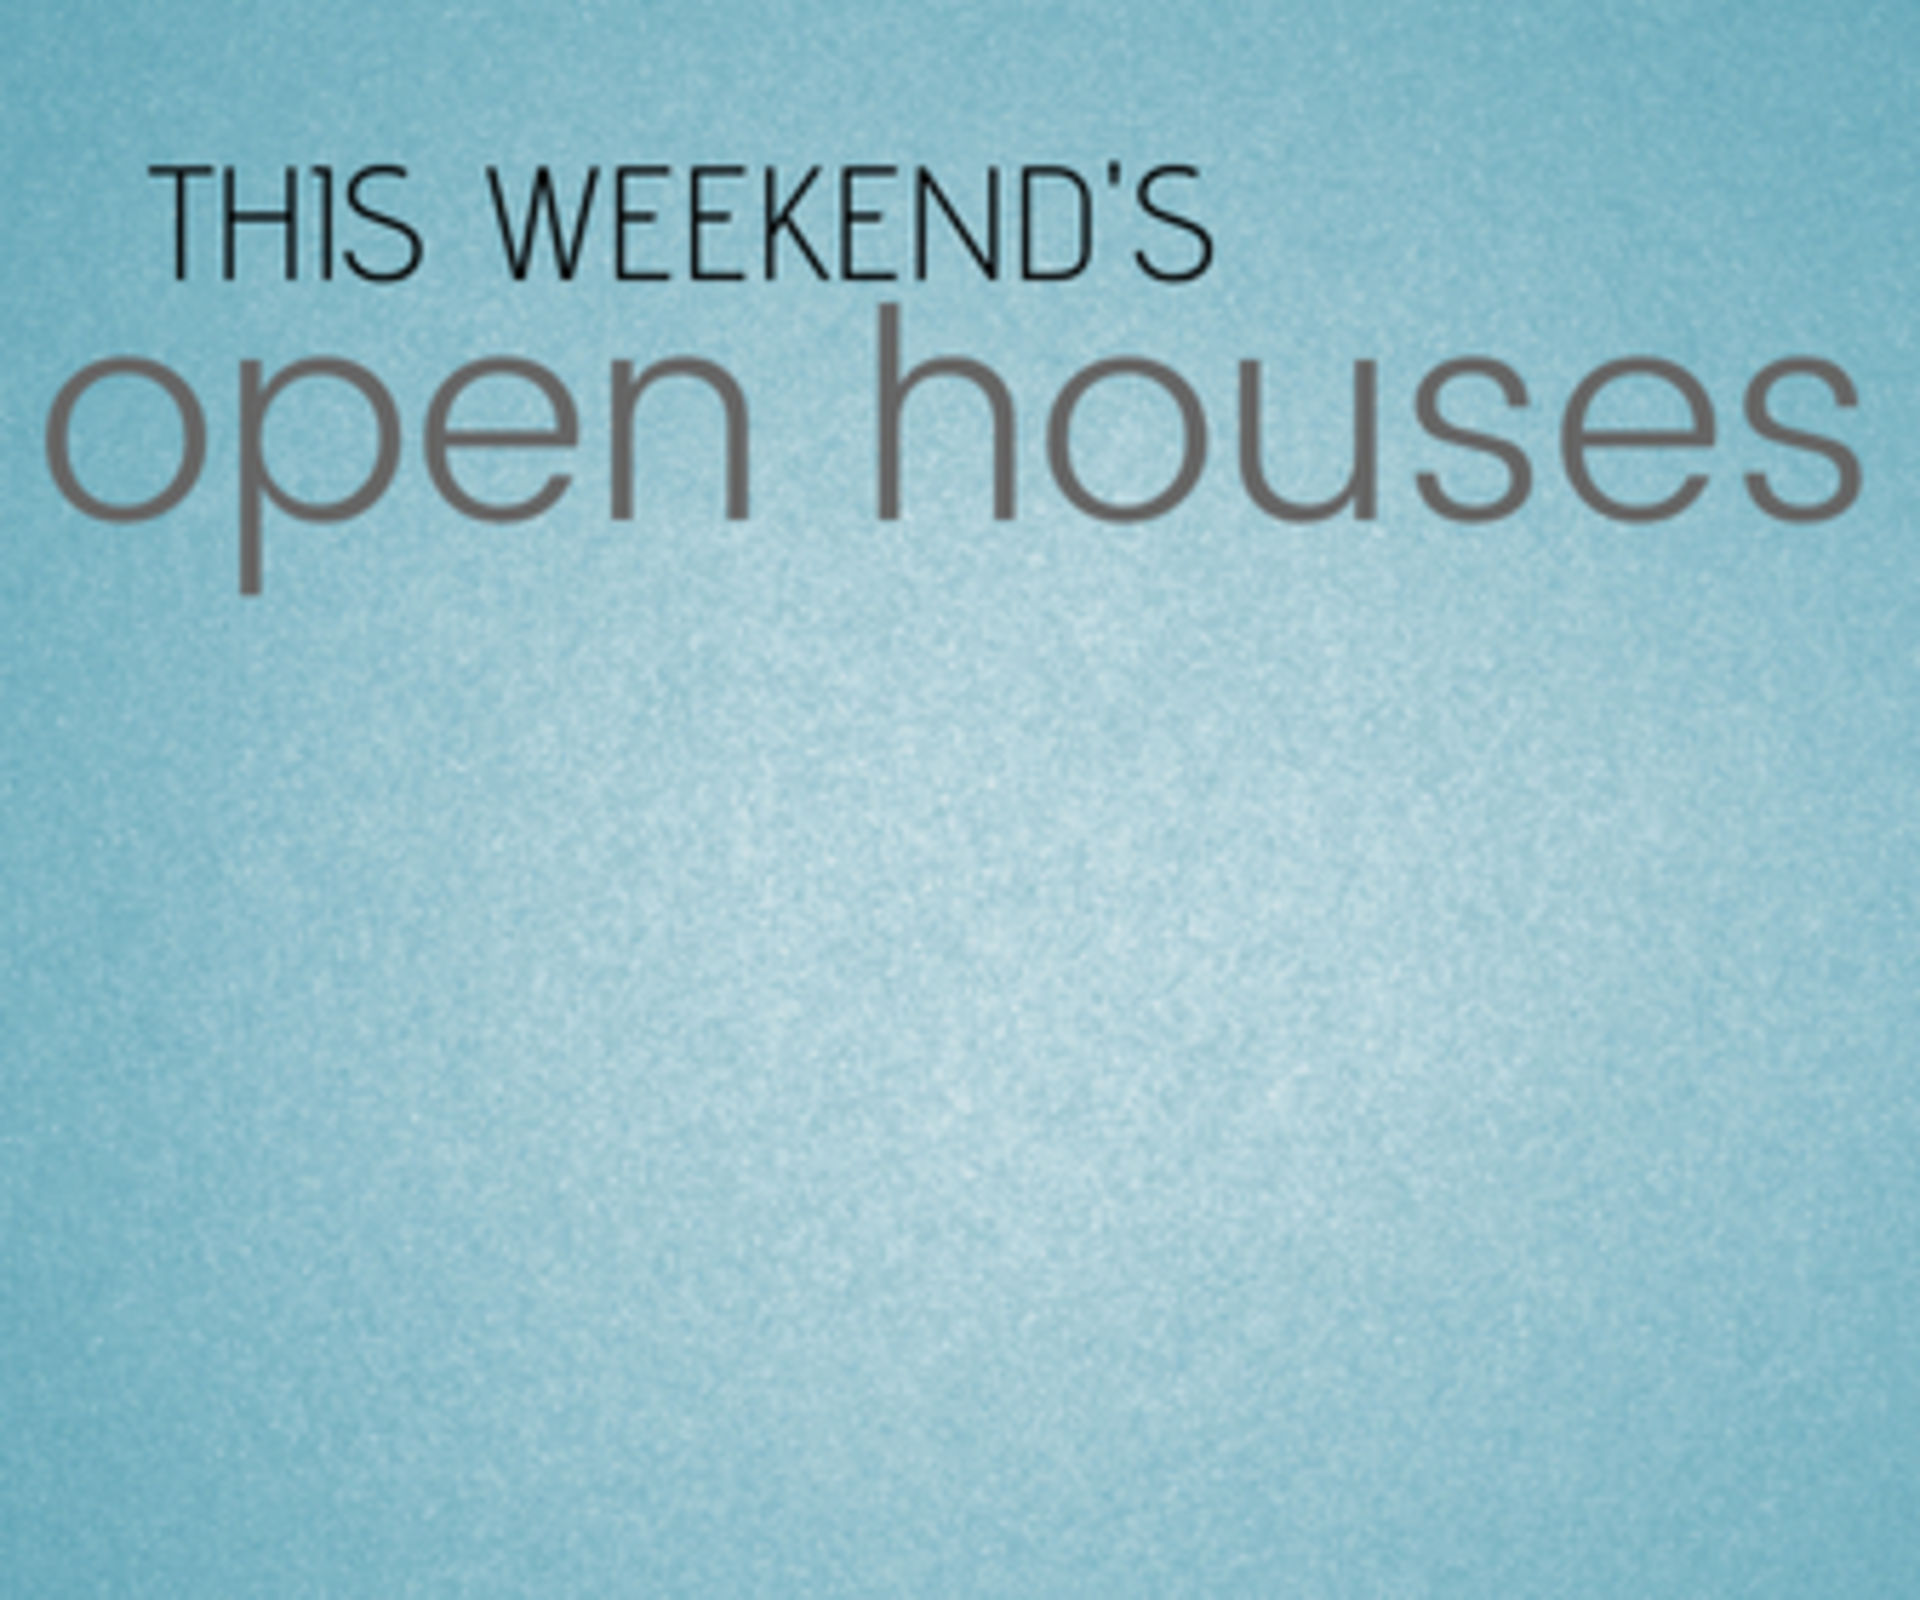 This Weekend's OPEN HOUSES! See you there!